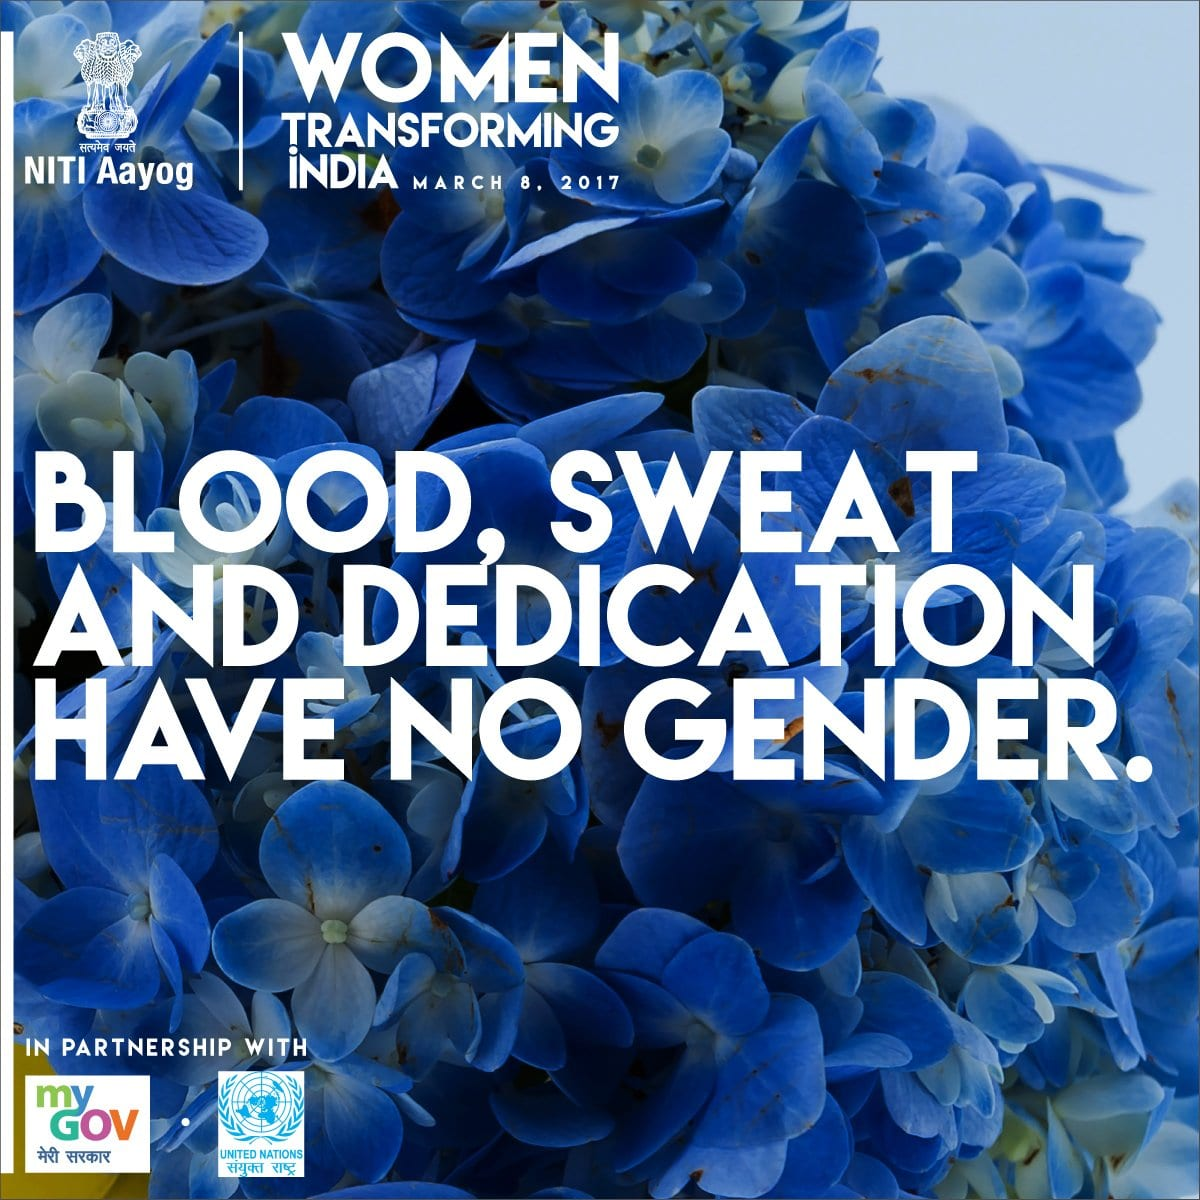 NITI Aayog launches the 2nd edition of Women Transforming India – celebrating women who are breaking the glass ceiling